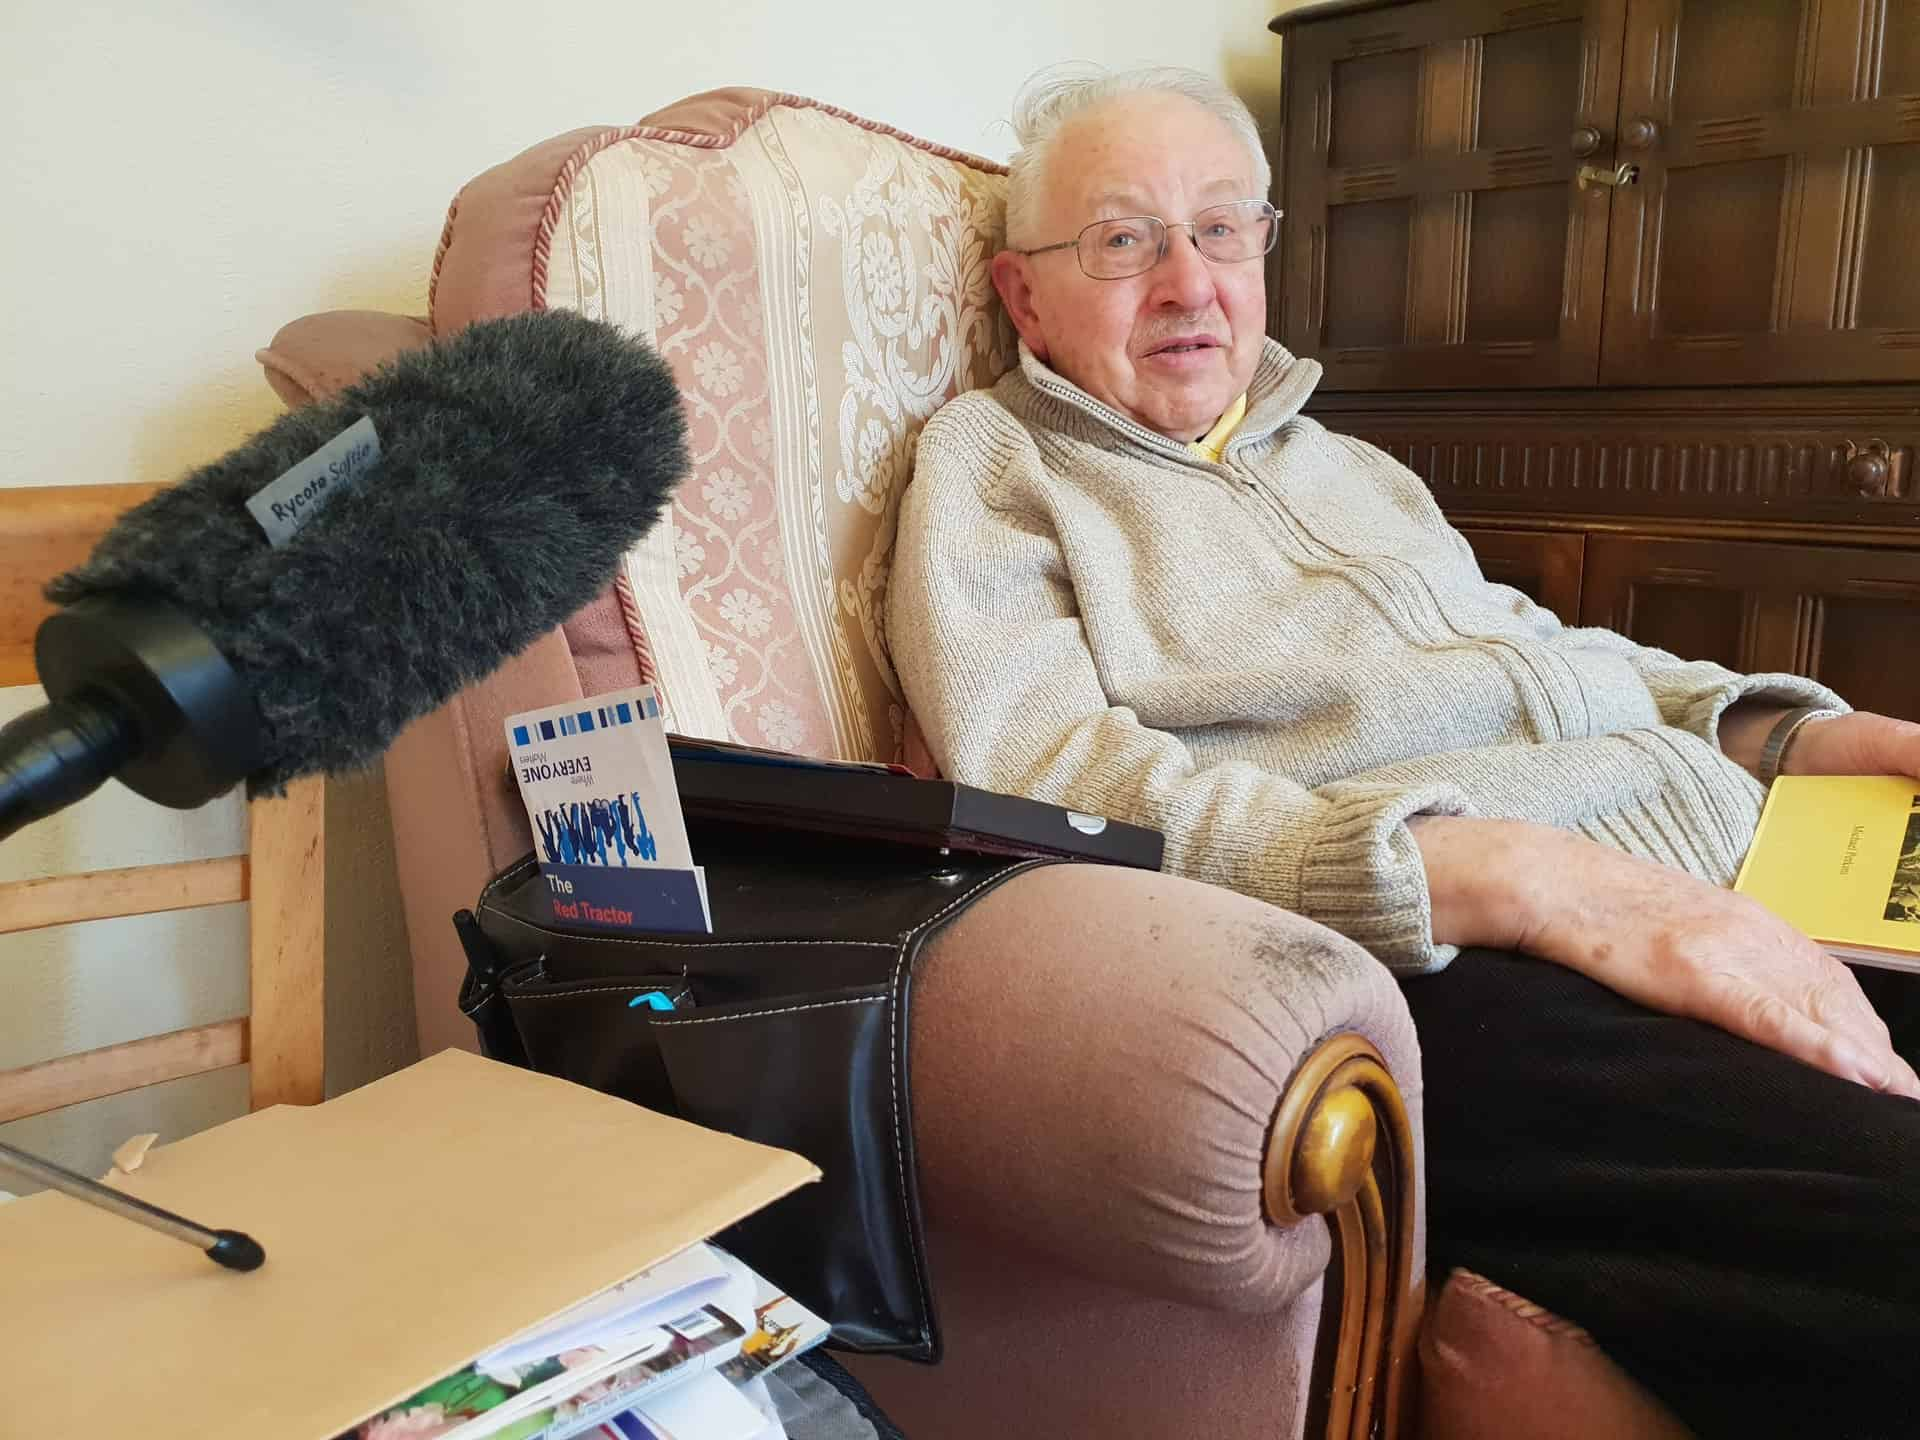 John Shrimpton being interviewed, March 2018